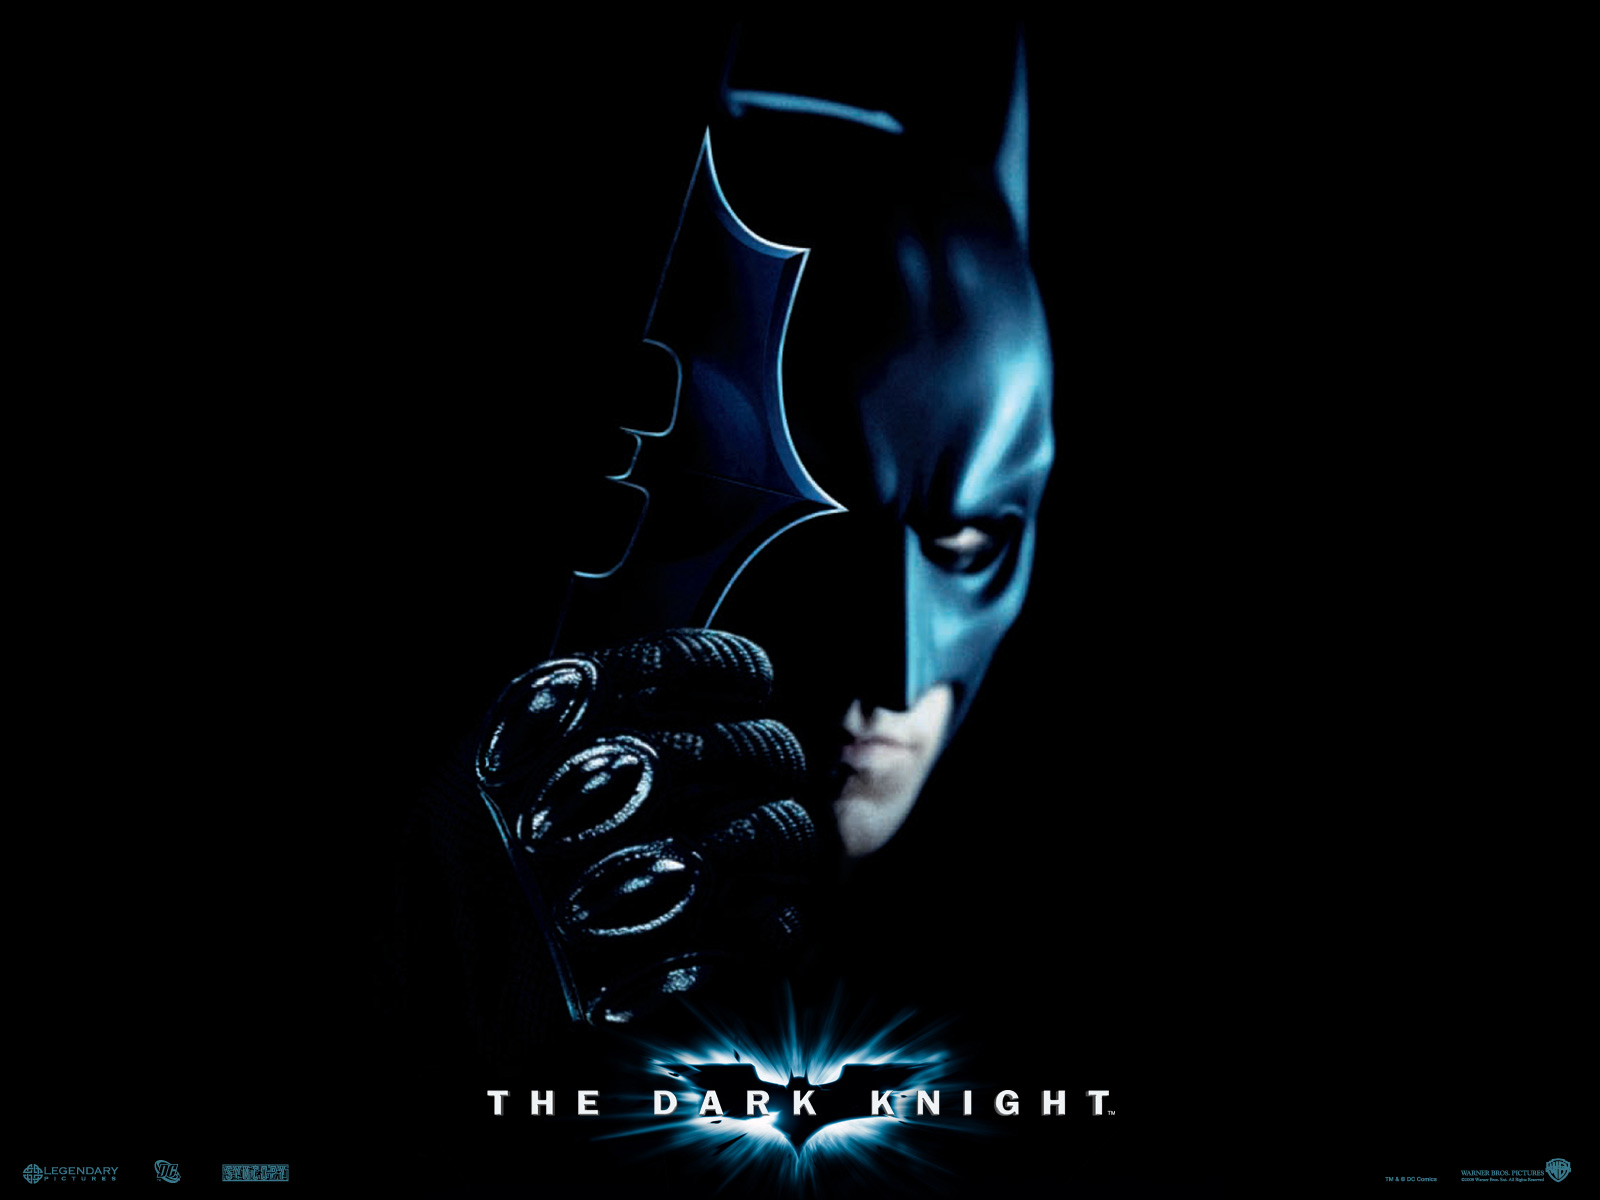 http://1.bp.blogspot.com/-BTir4zSME5M/TmRnb2h_TyI/AAAAAAAABLg/61NA_ivTK9o/s1600/1305784603_1600x1200_the-dark-knight-wallpaper.jpg